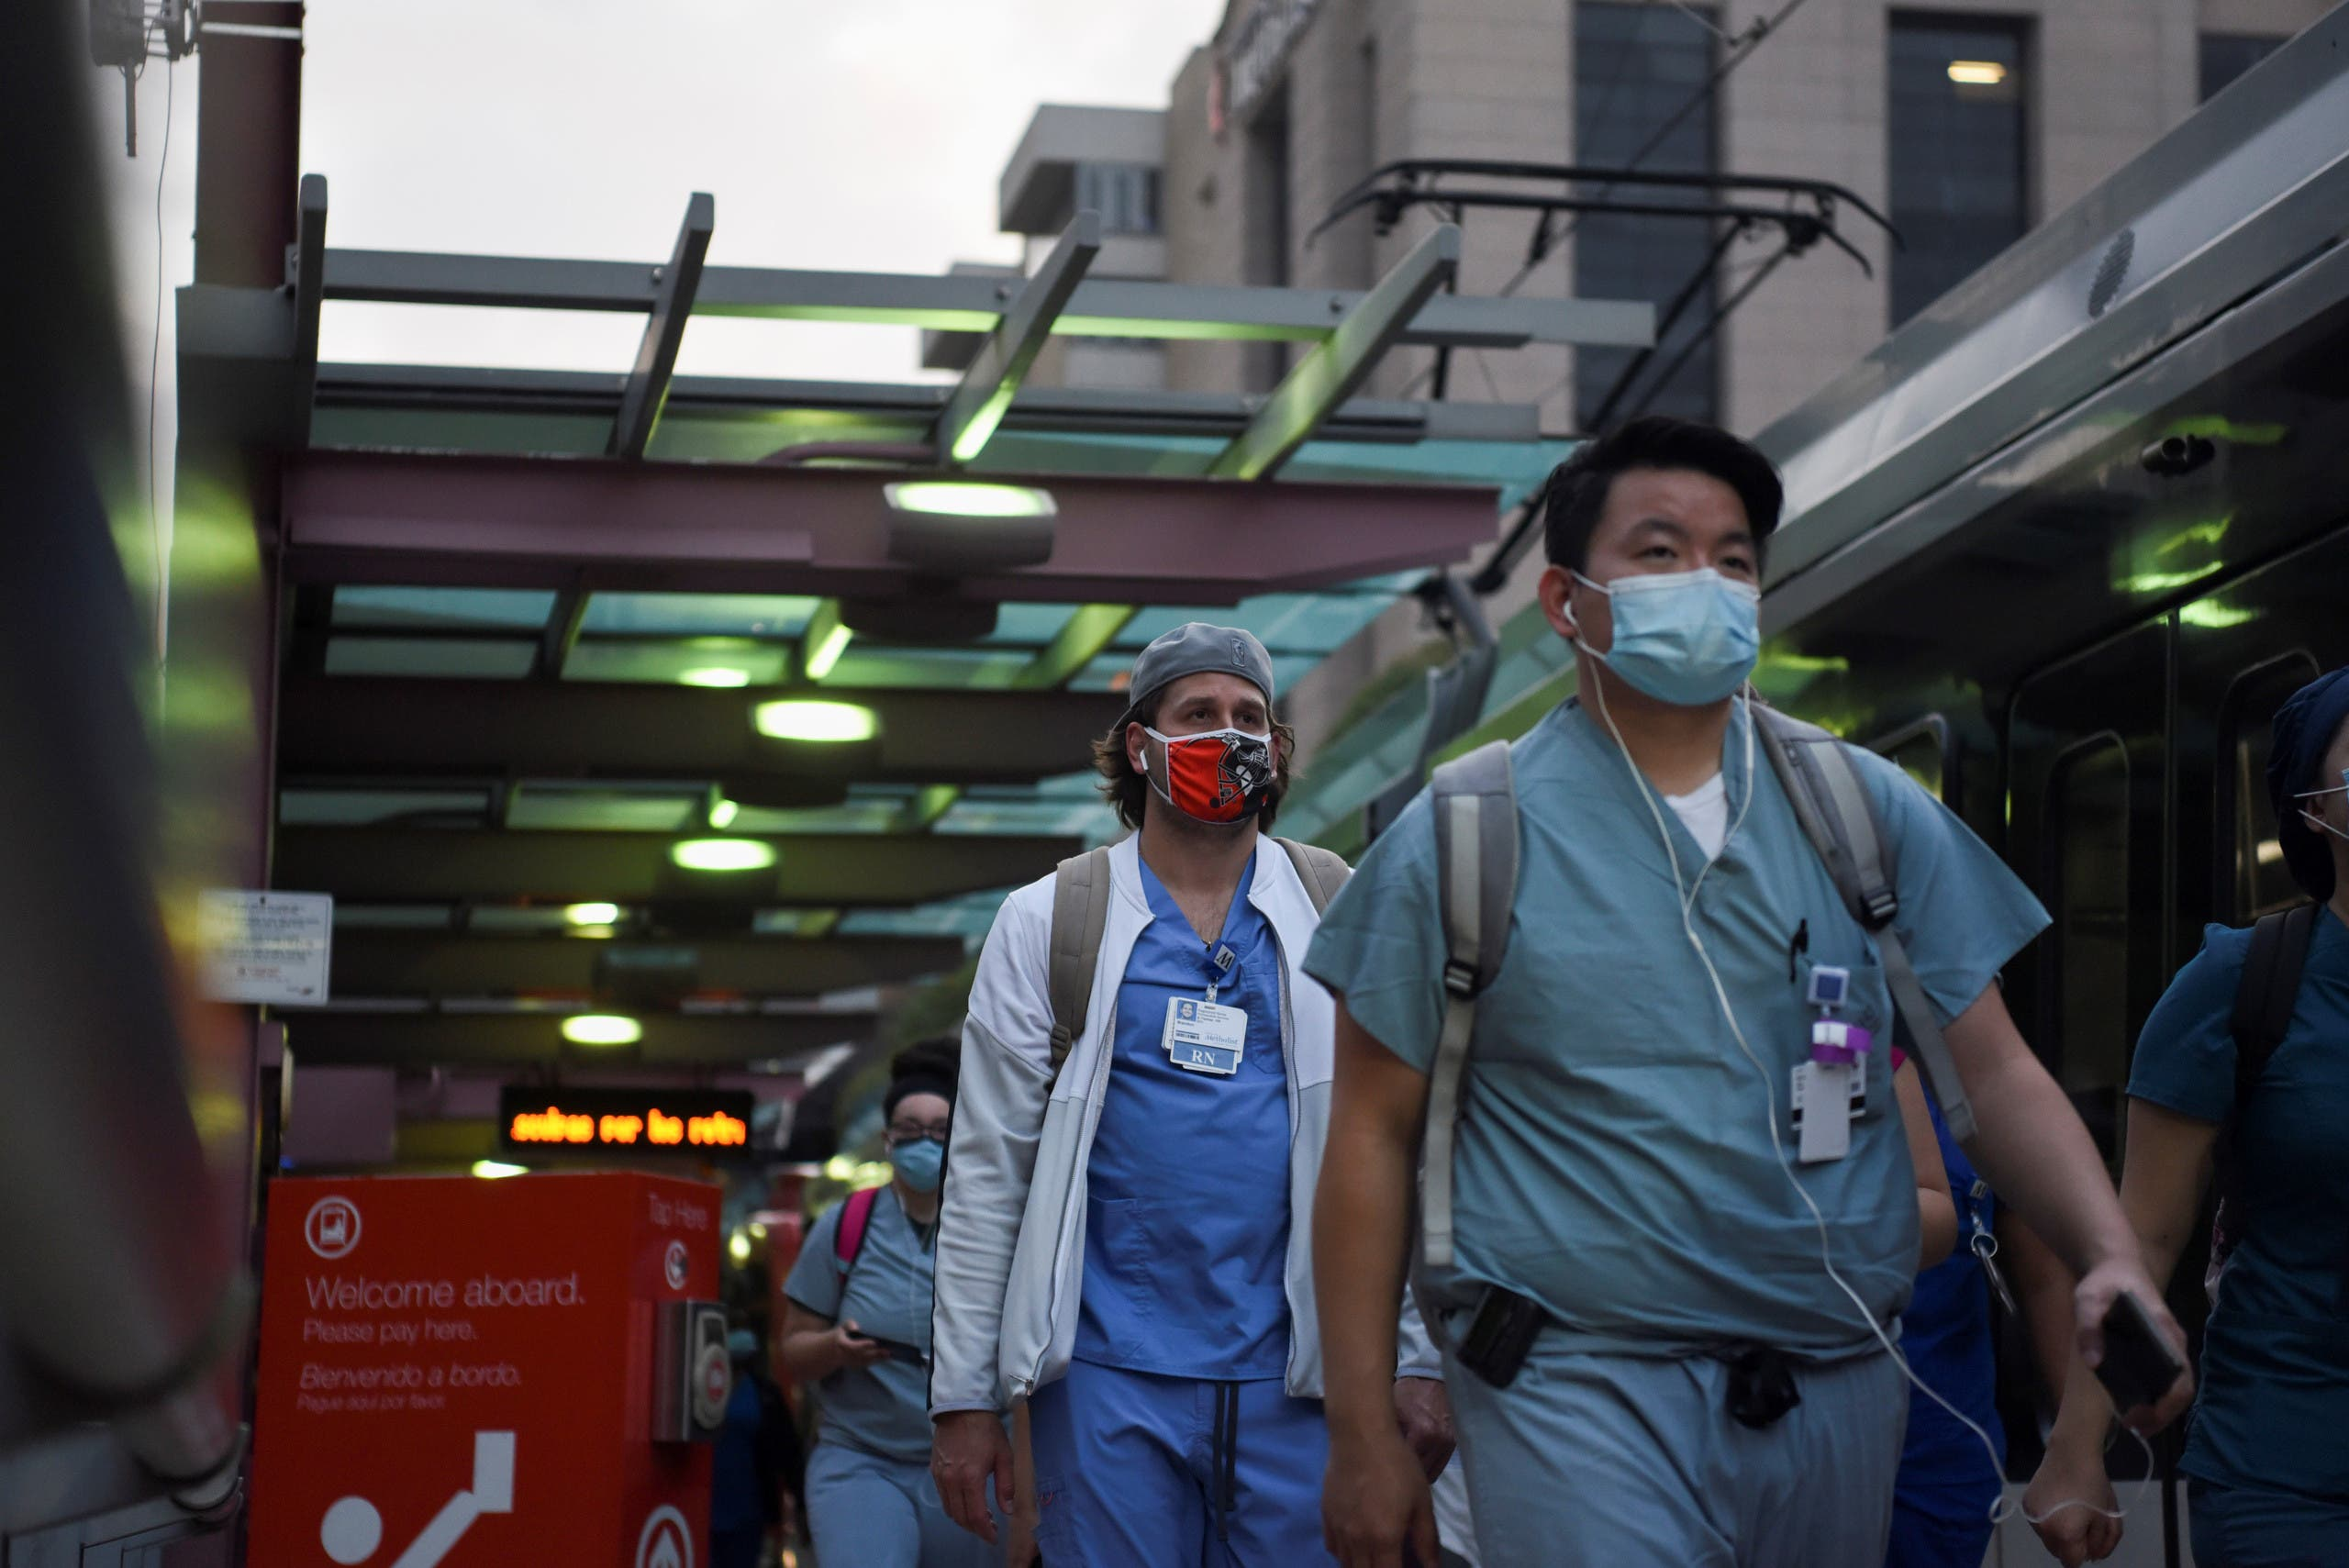 Healthcare workers walk through the Texas Medical Center as cases of the coronavirus spike in the United States, July 8, 2020. (Reuters)